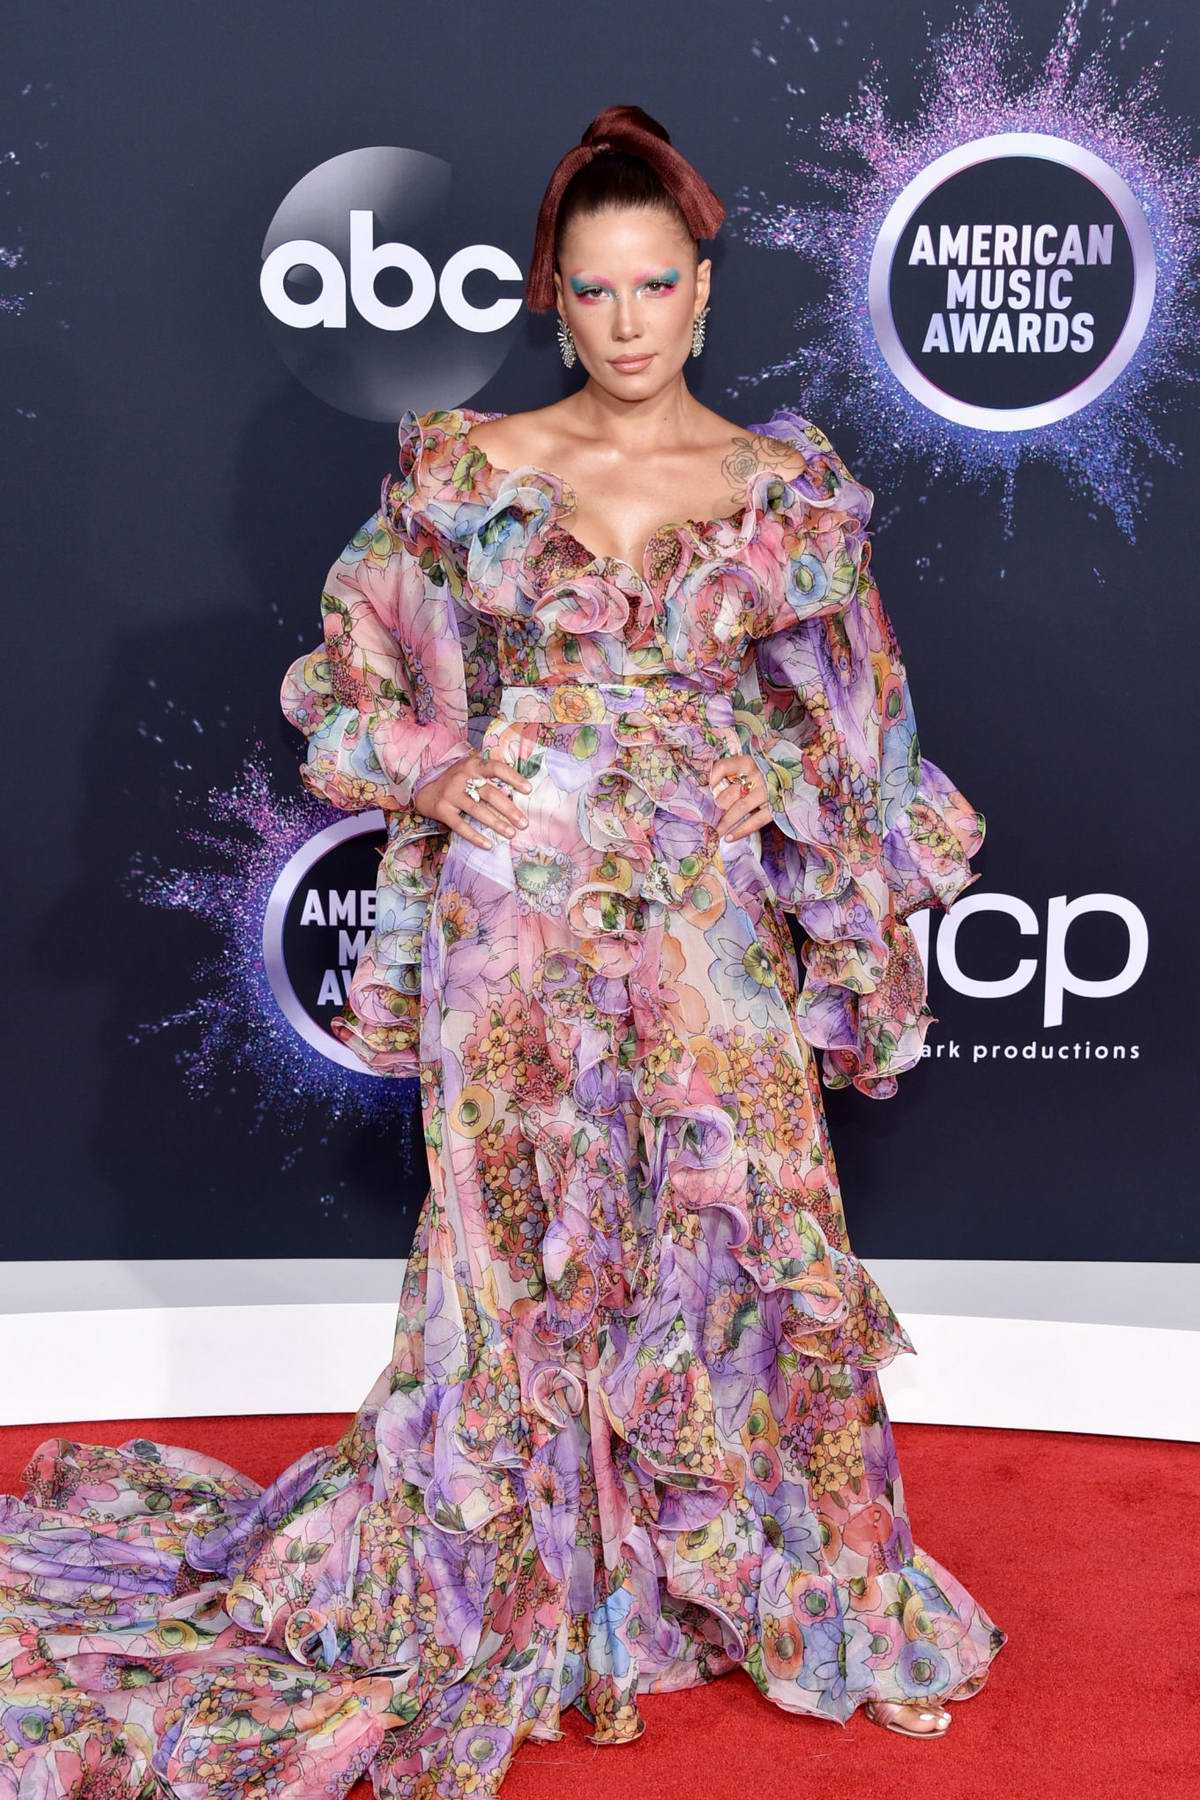 Halsey attends the 2019 American Music Awards at Microsoft Theater in Los Angeles